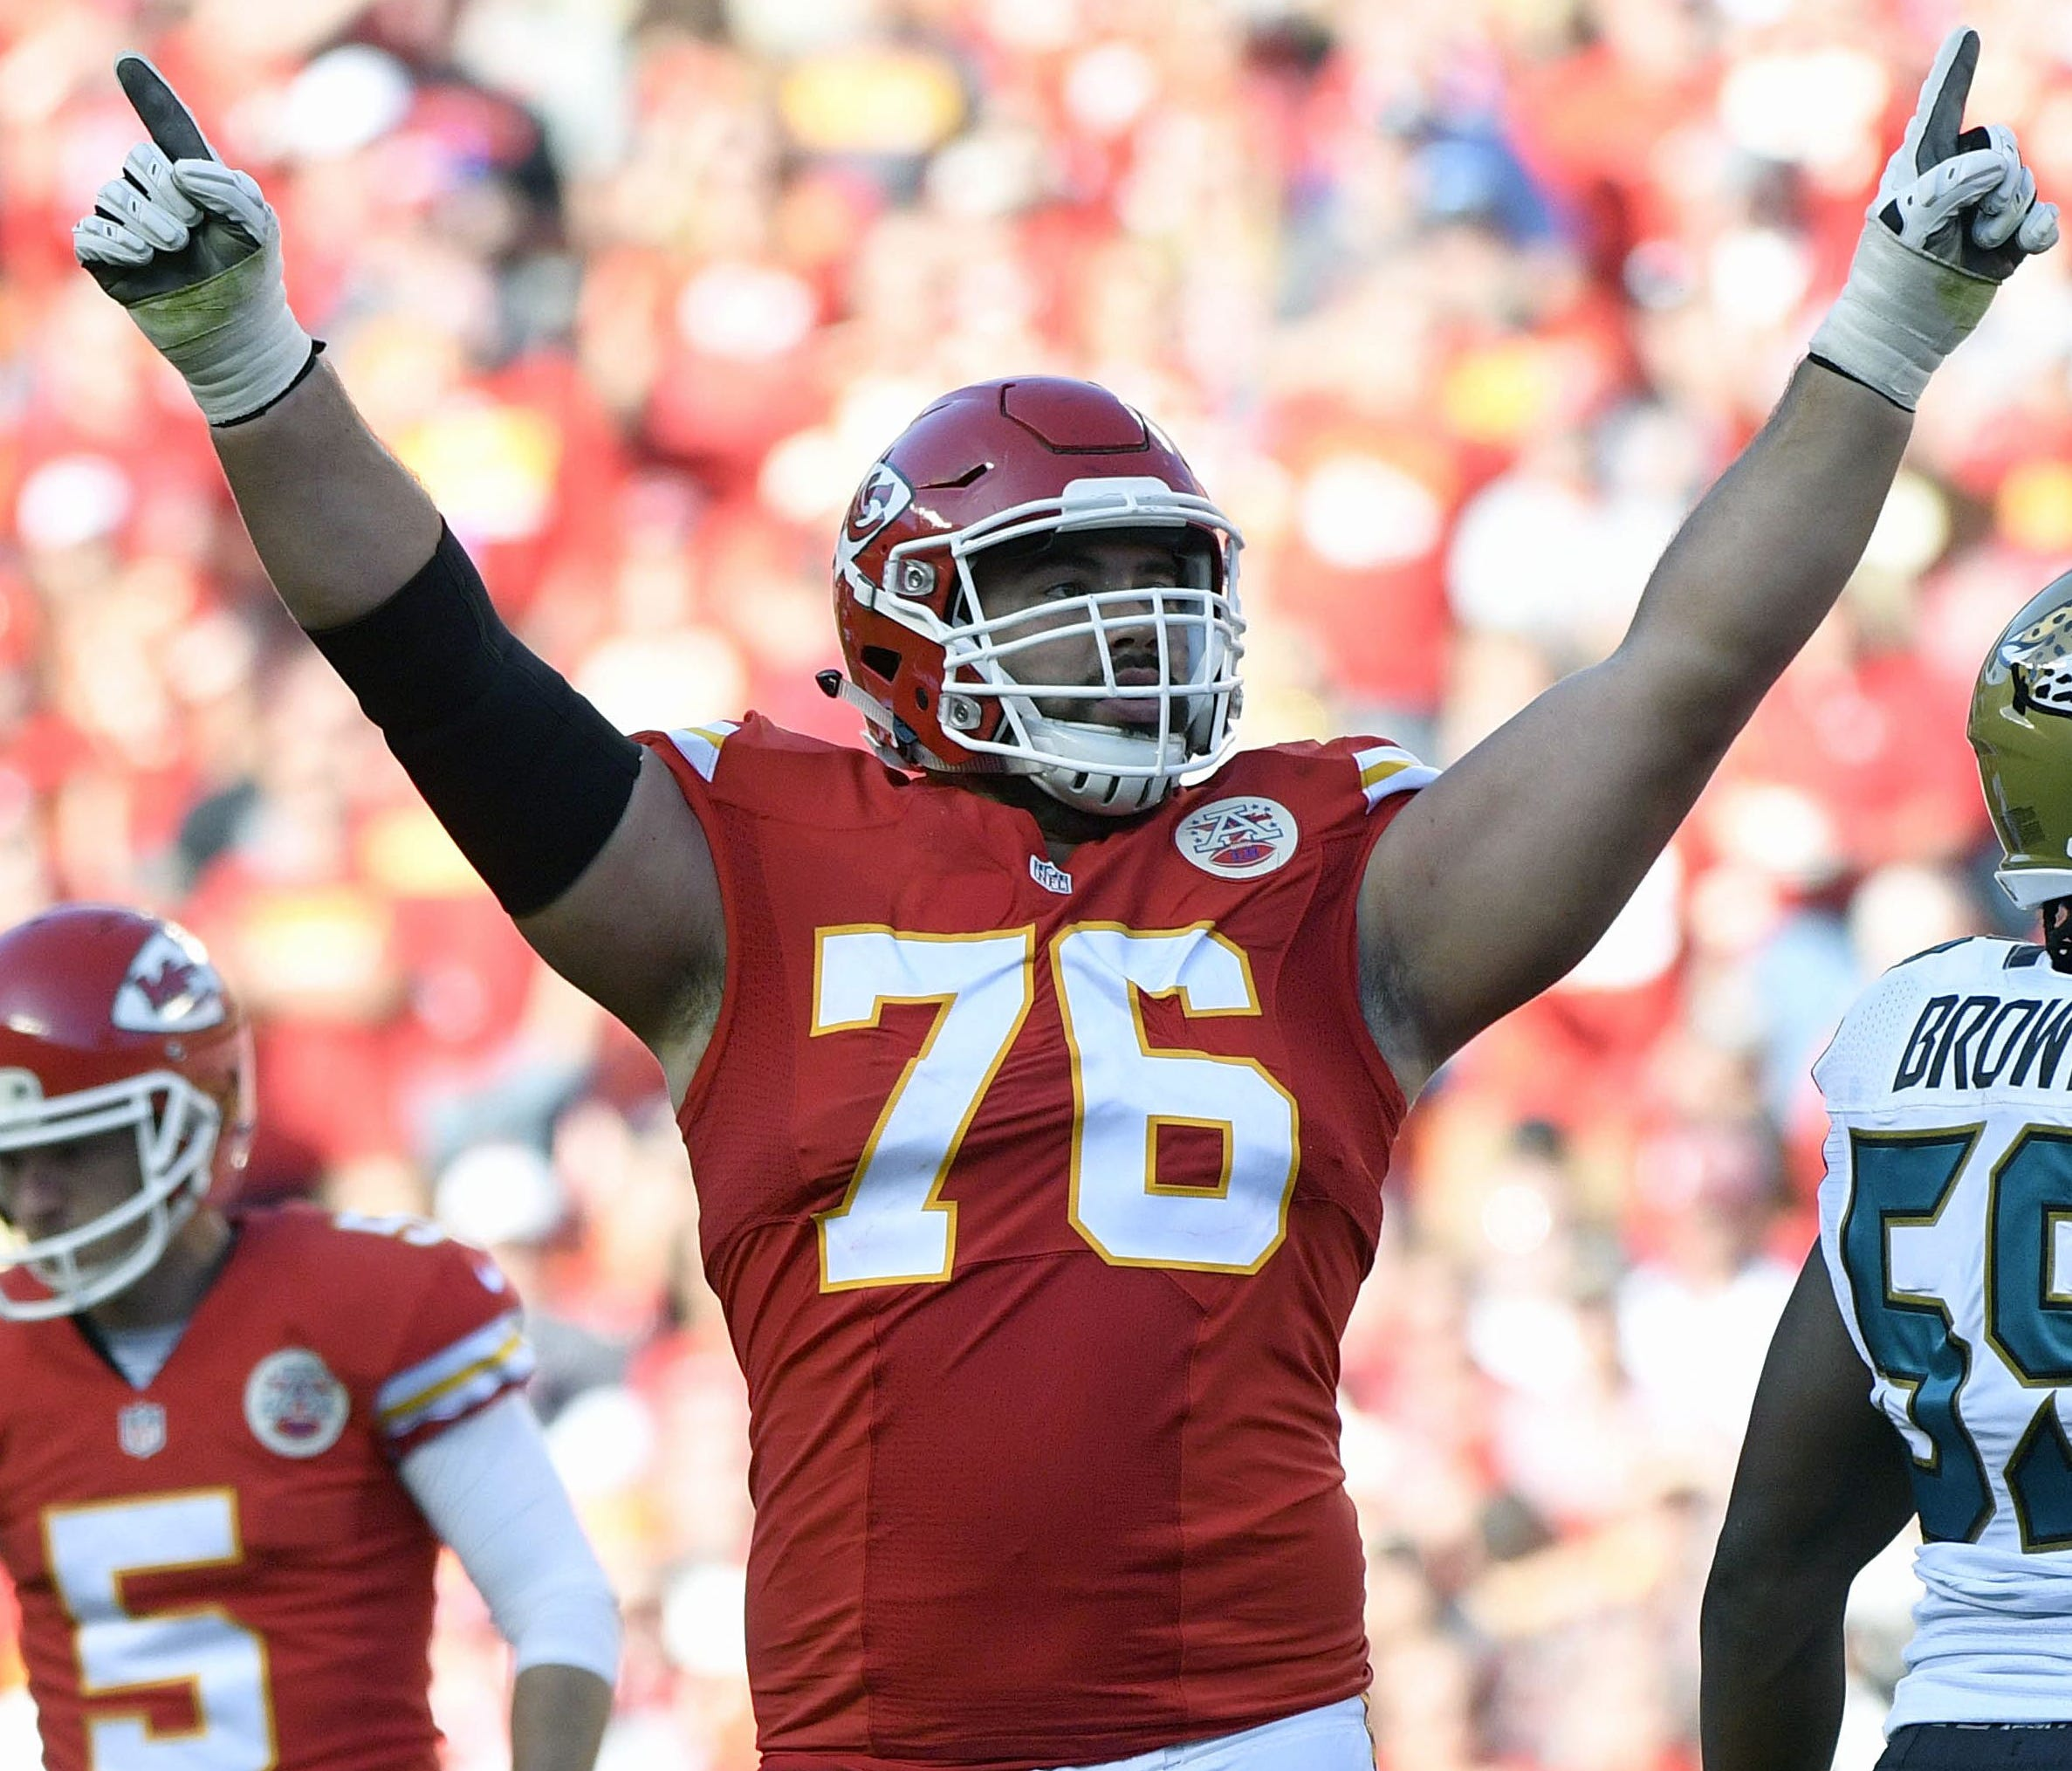 FILE - In this Nov. 6, 2016, file photo, Kansas City Chiefs offensive lineman Laurent Duvernay-Tardif (76) celebrates after a field goal by kicker Cairo Santos (5), during the second half of an NFL football game against the Jacksonville Jaguars in Ka